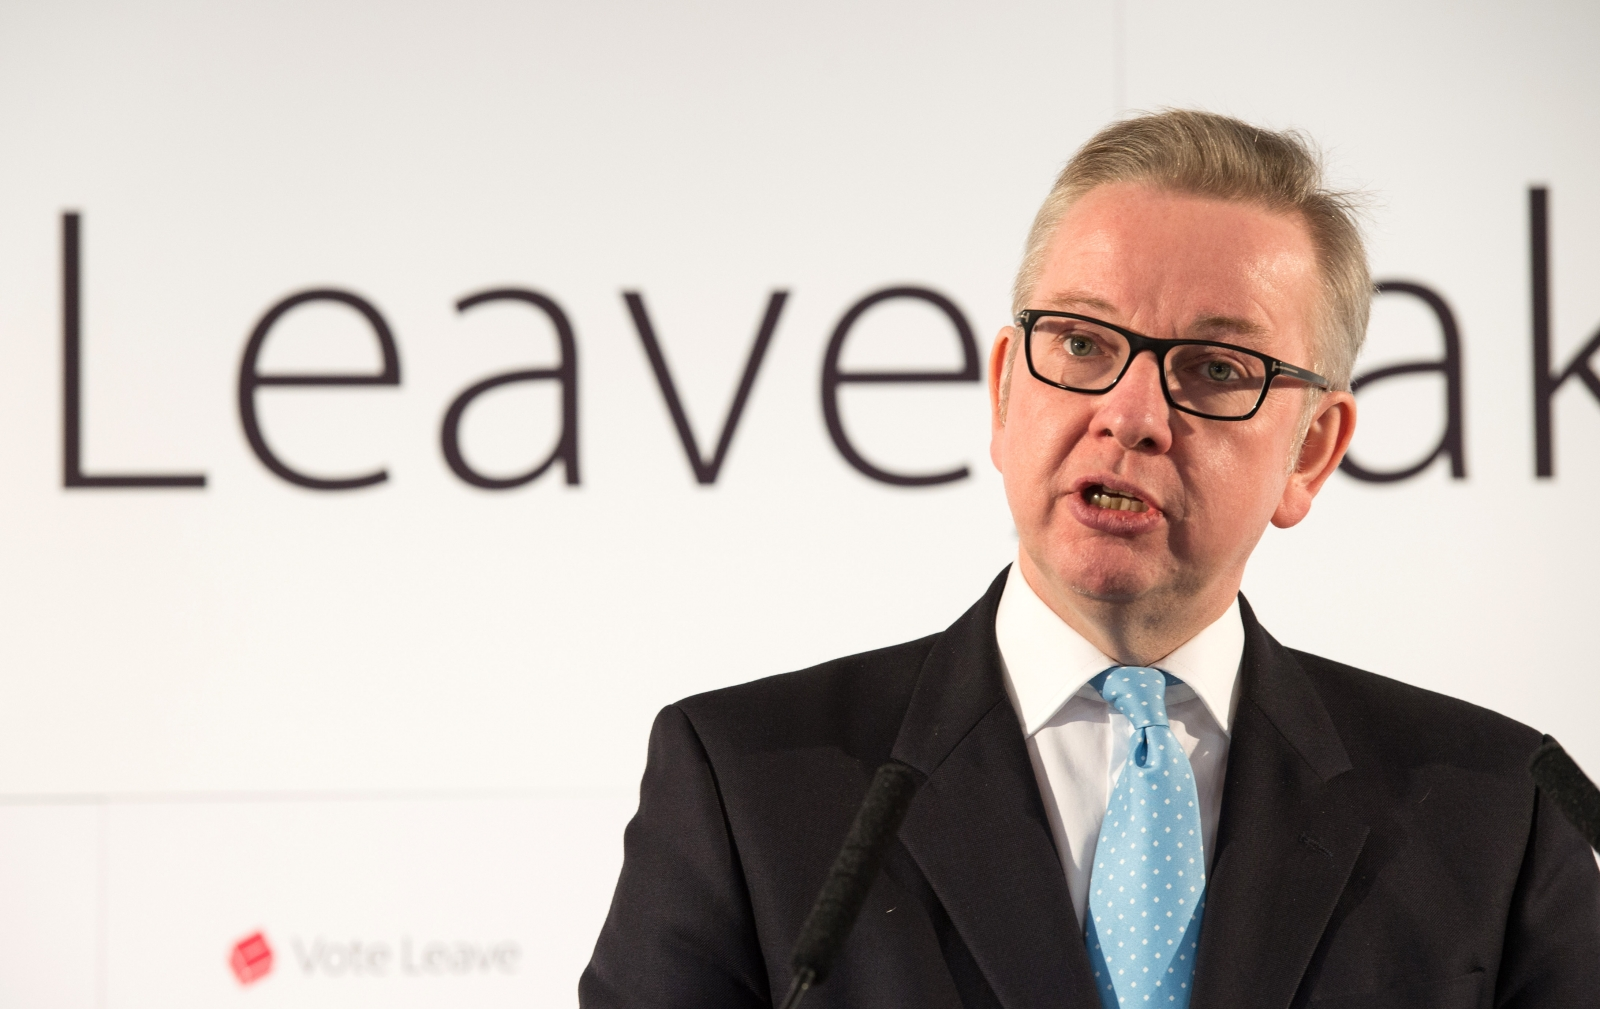 Brexit: Michael Gove says Britain 'embarking on new chapter' after EU referendum